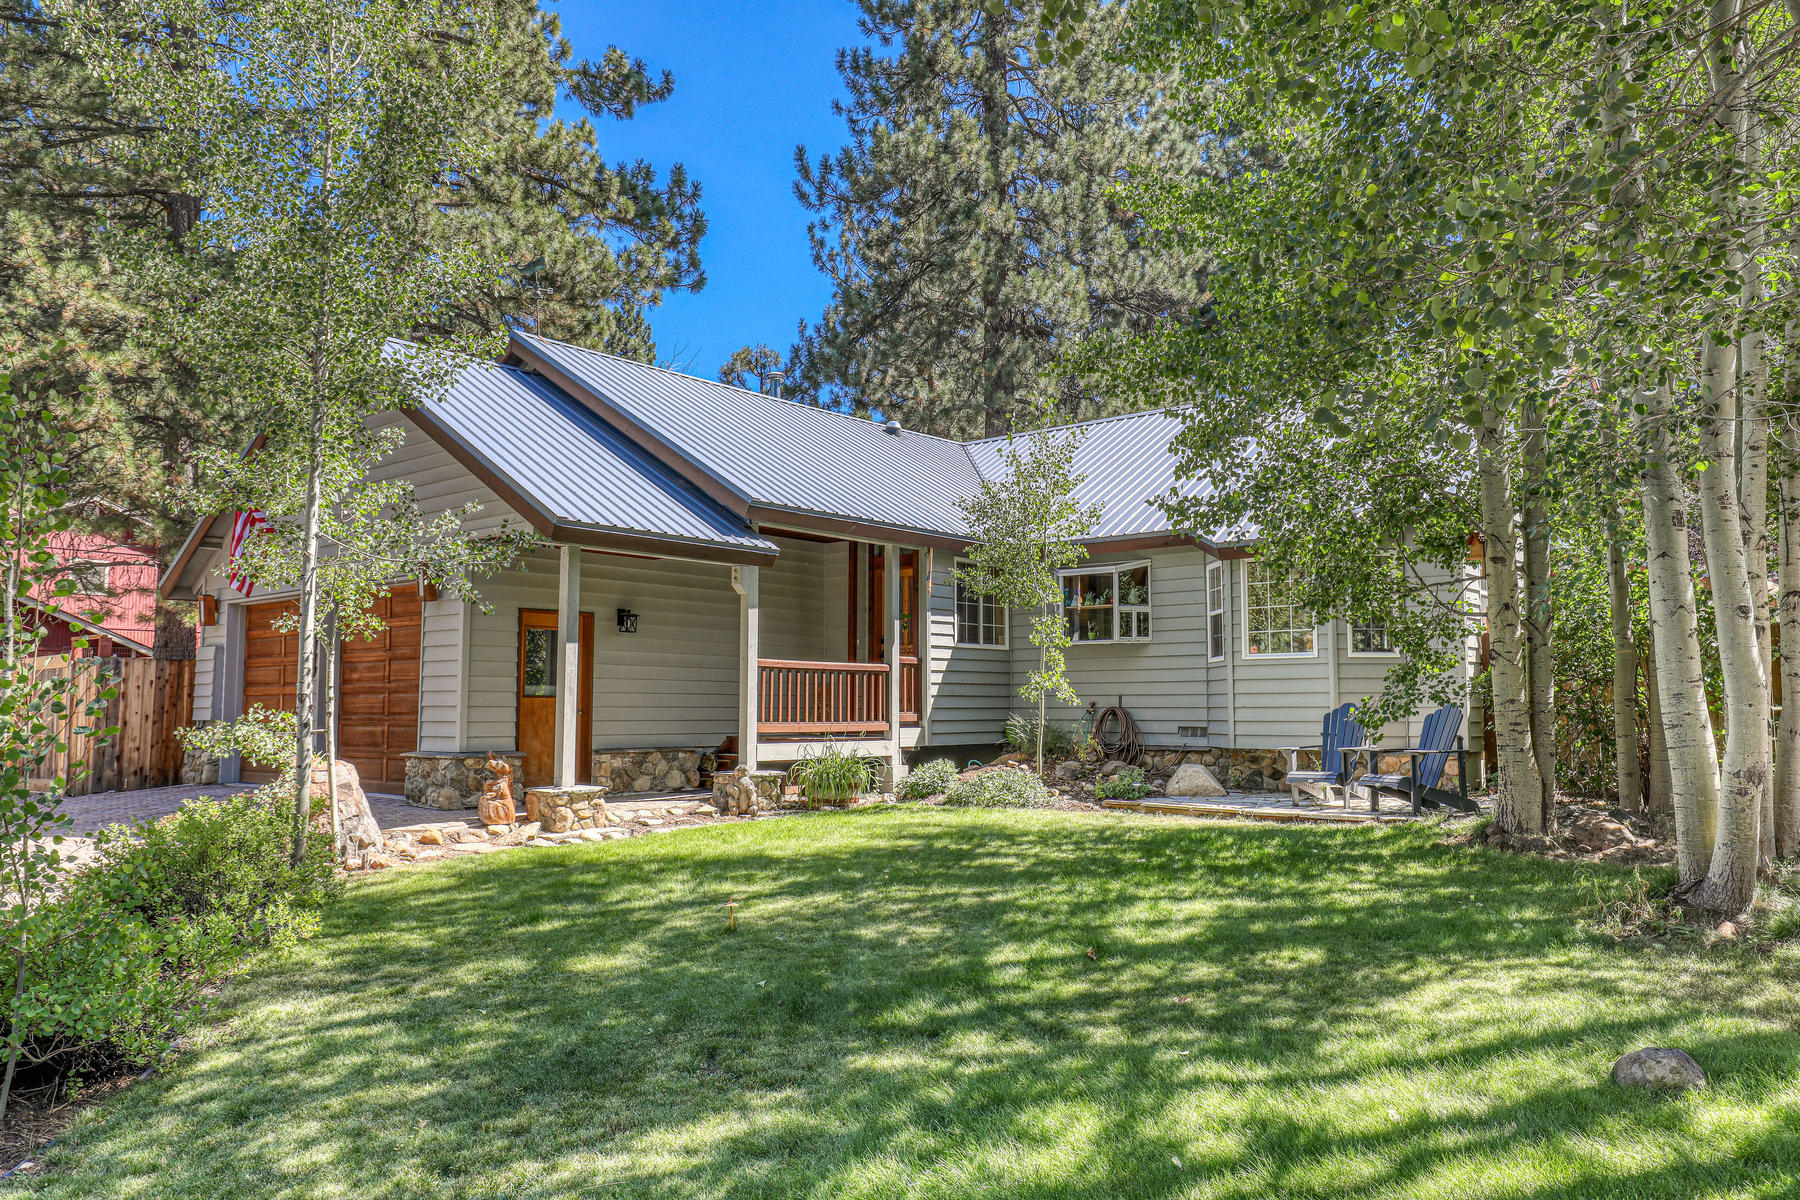 Single Family Homes for Active at Truckee Oasis Awaits 10989 Jeffery Pine Road Truckee, California 96161 United States